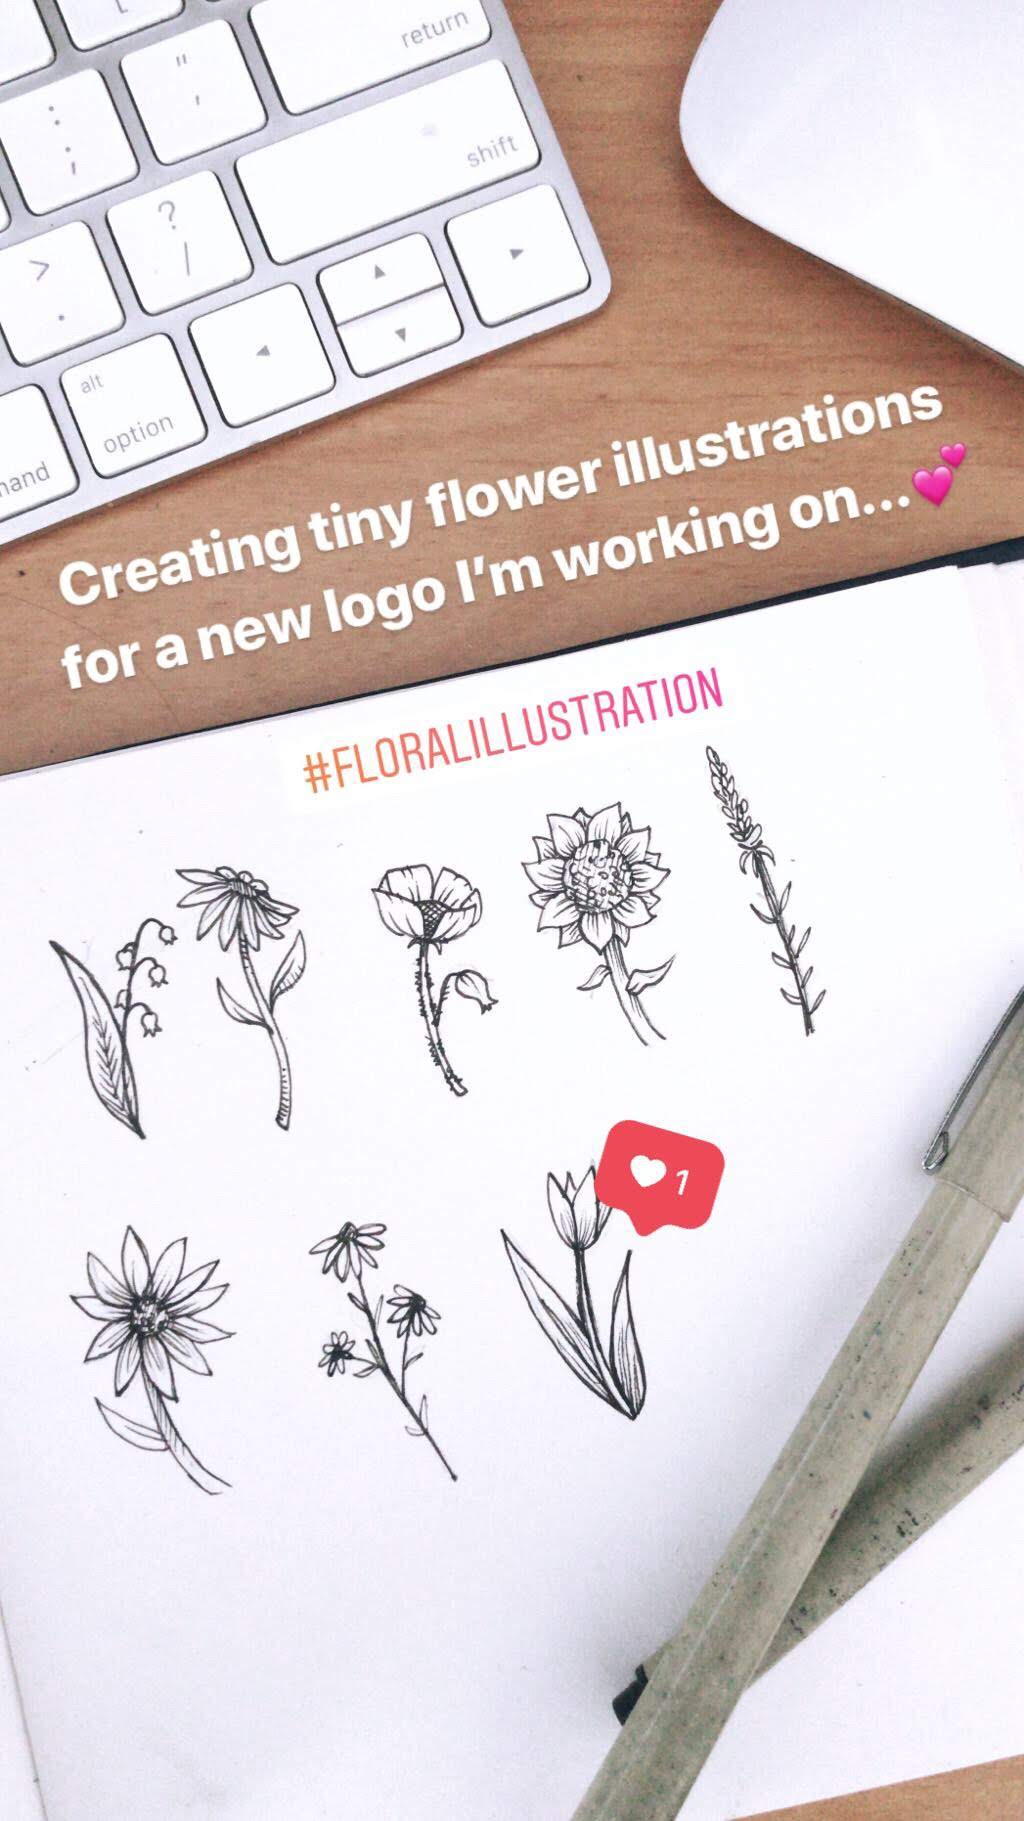 One of my most popular Instagram stories to date, this photo of my flower sketches garnered hundreds of views and tons of interest in my work.